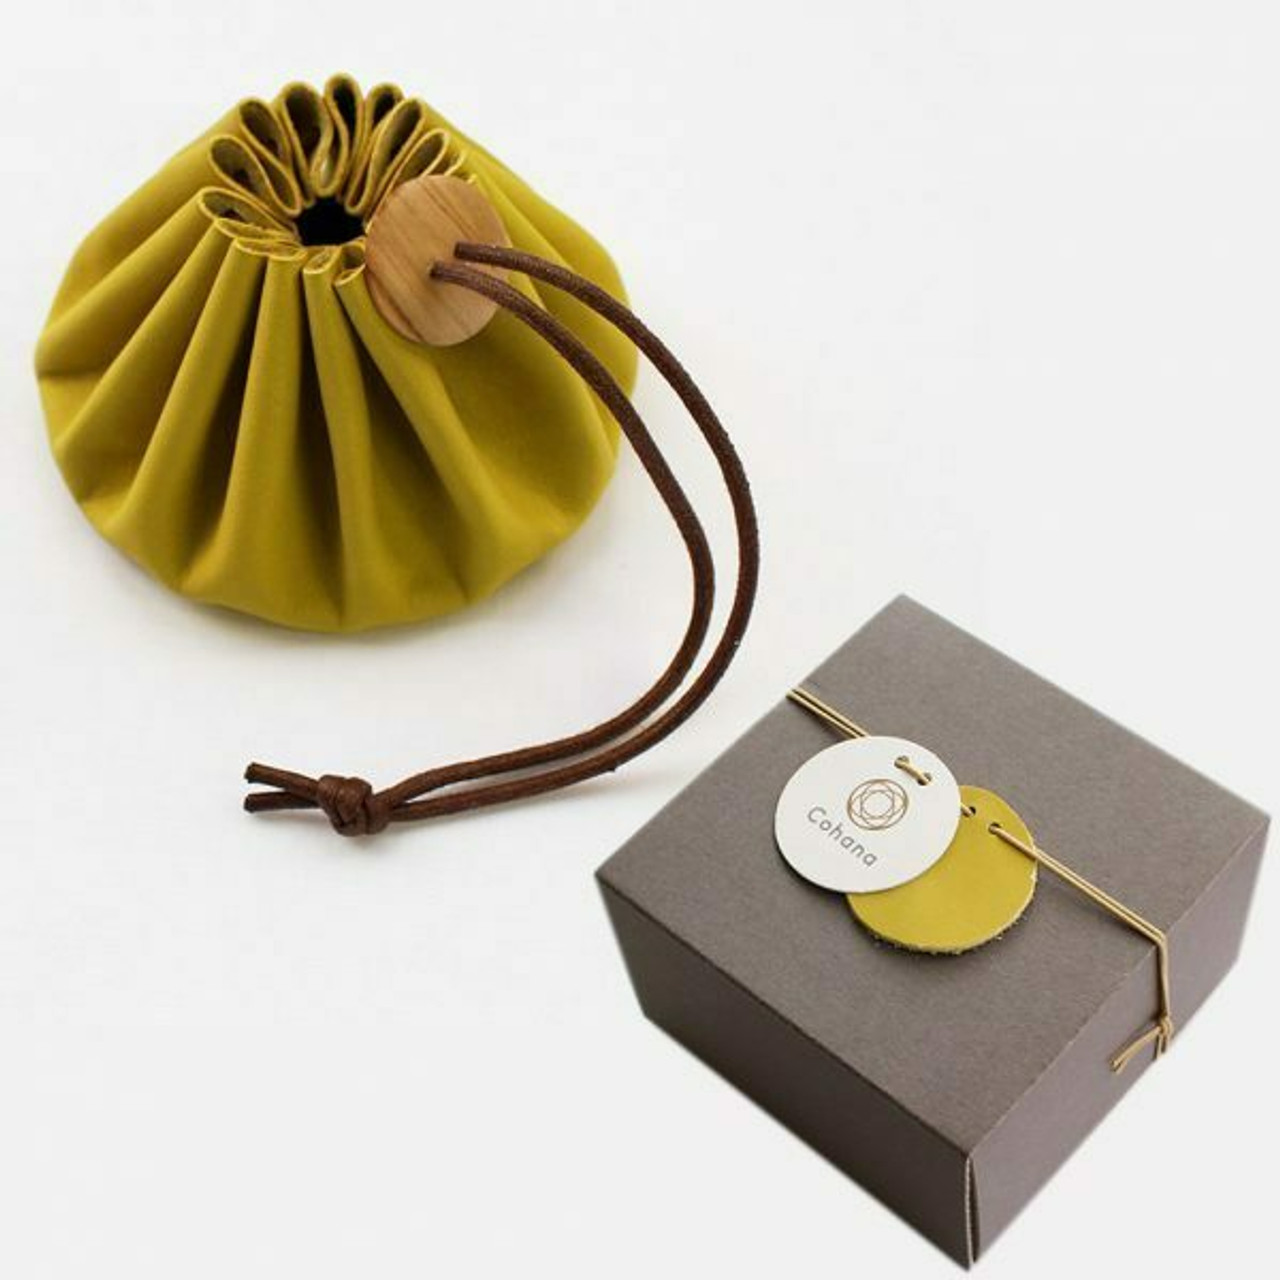 Cohana Drawstring Pouch with Himeji leather